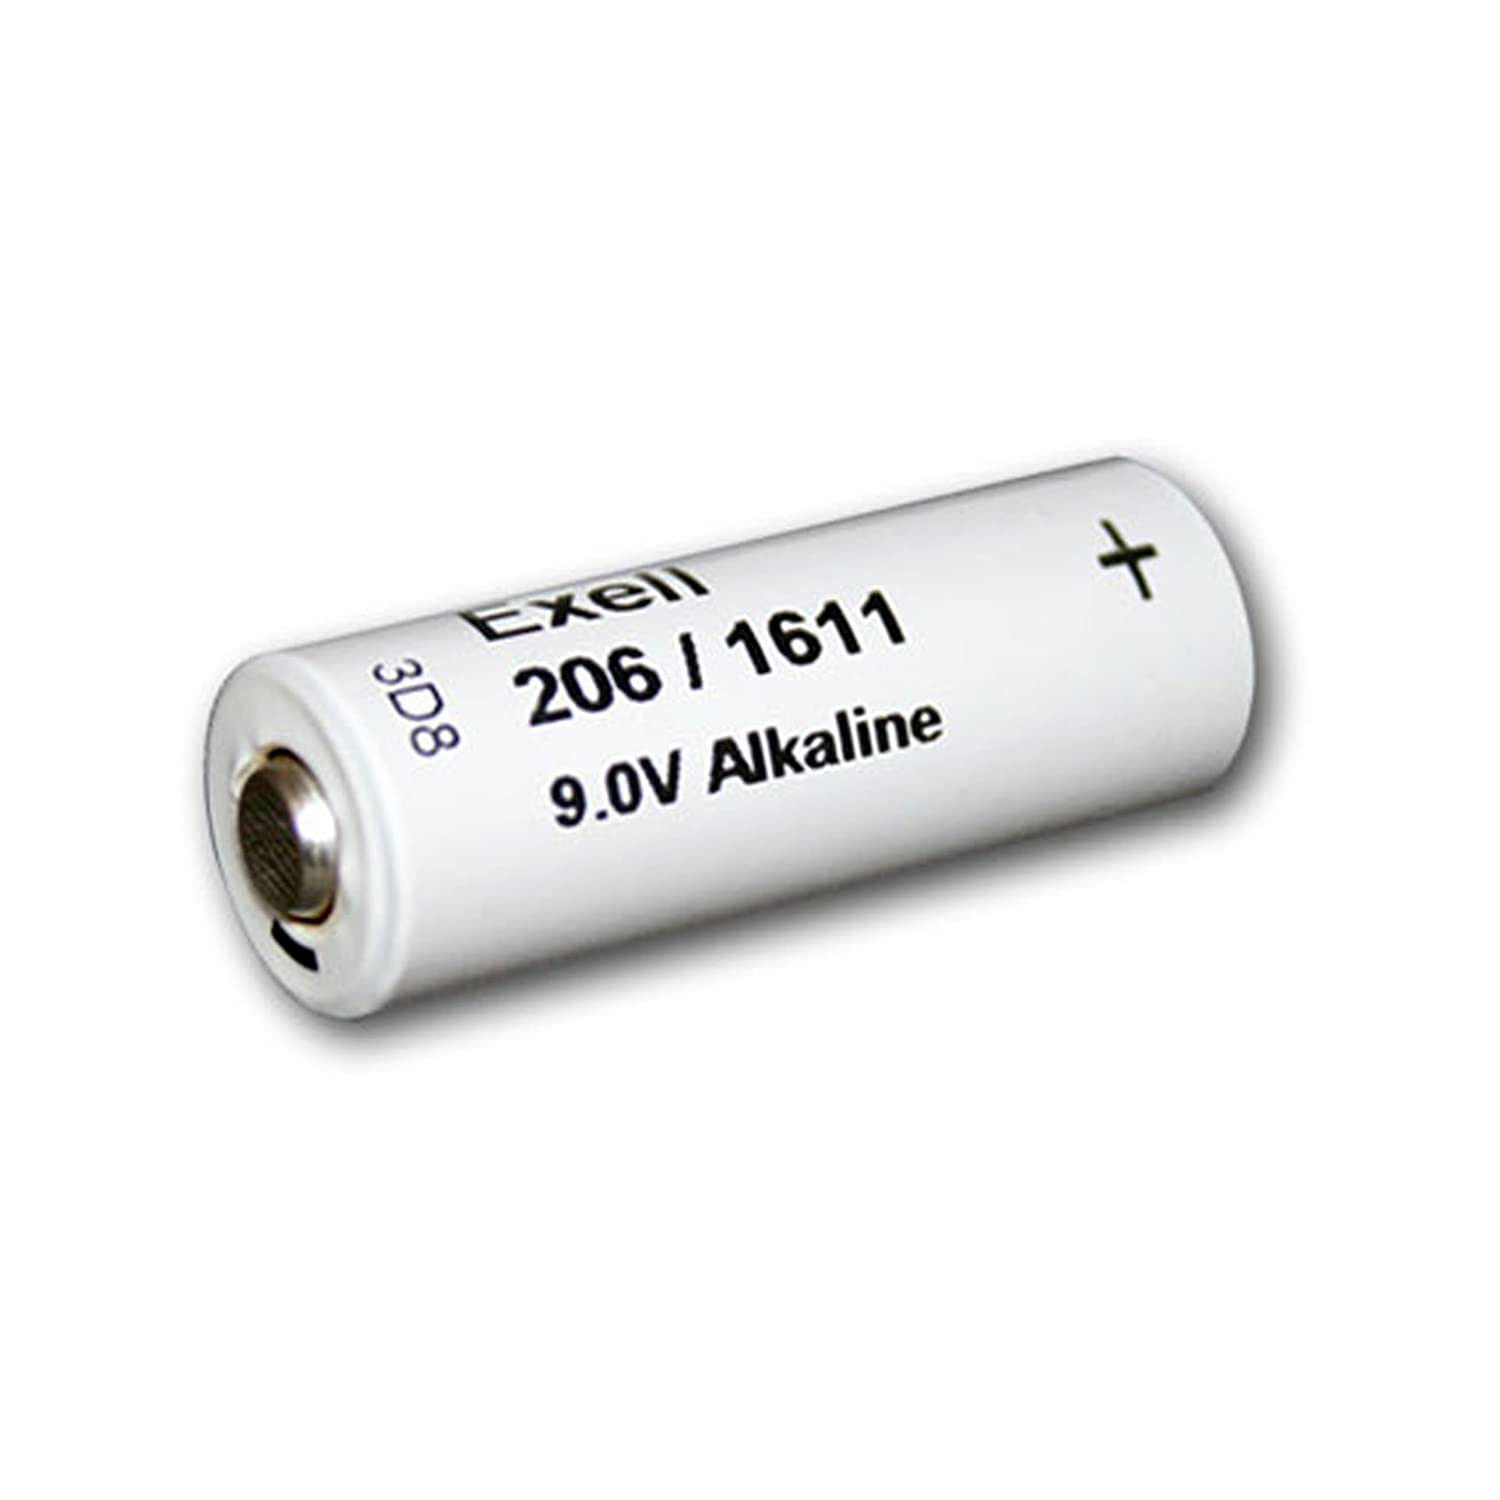 The 206A is a battery replacement for the ER206 battery